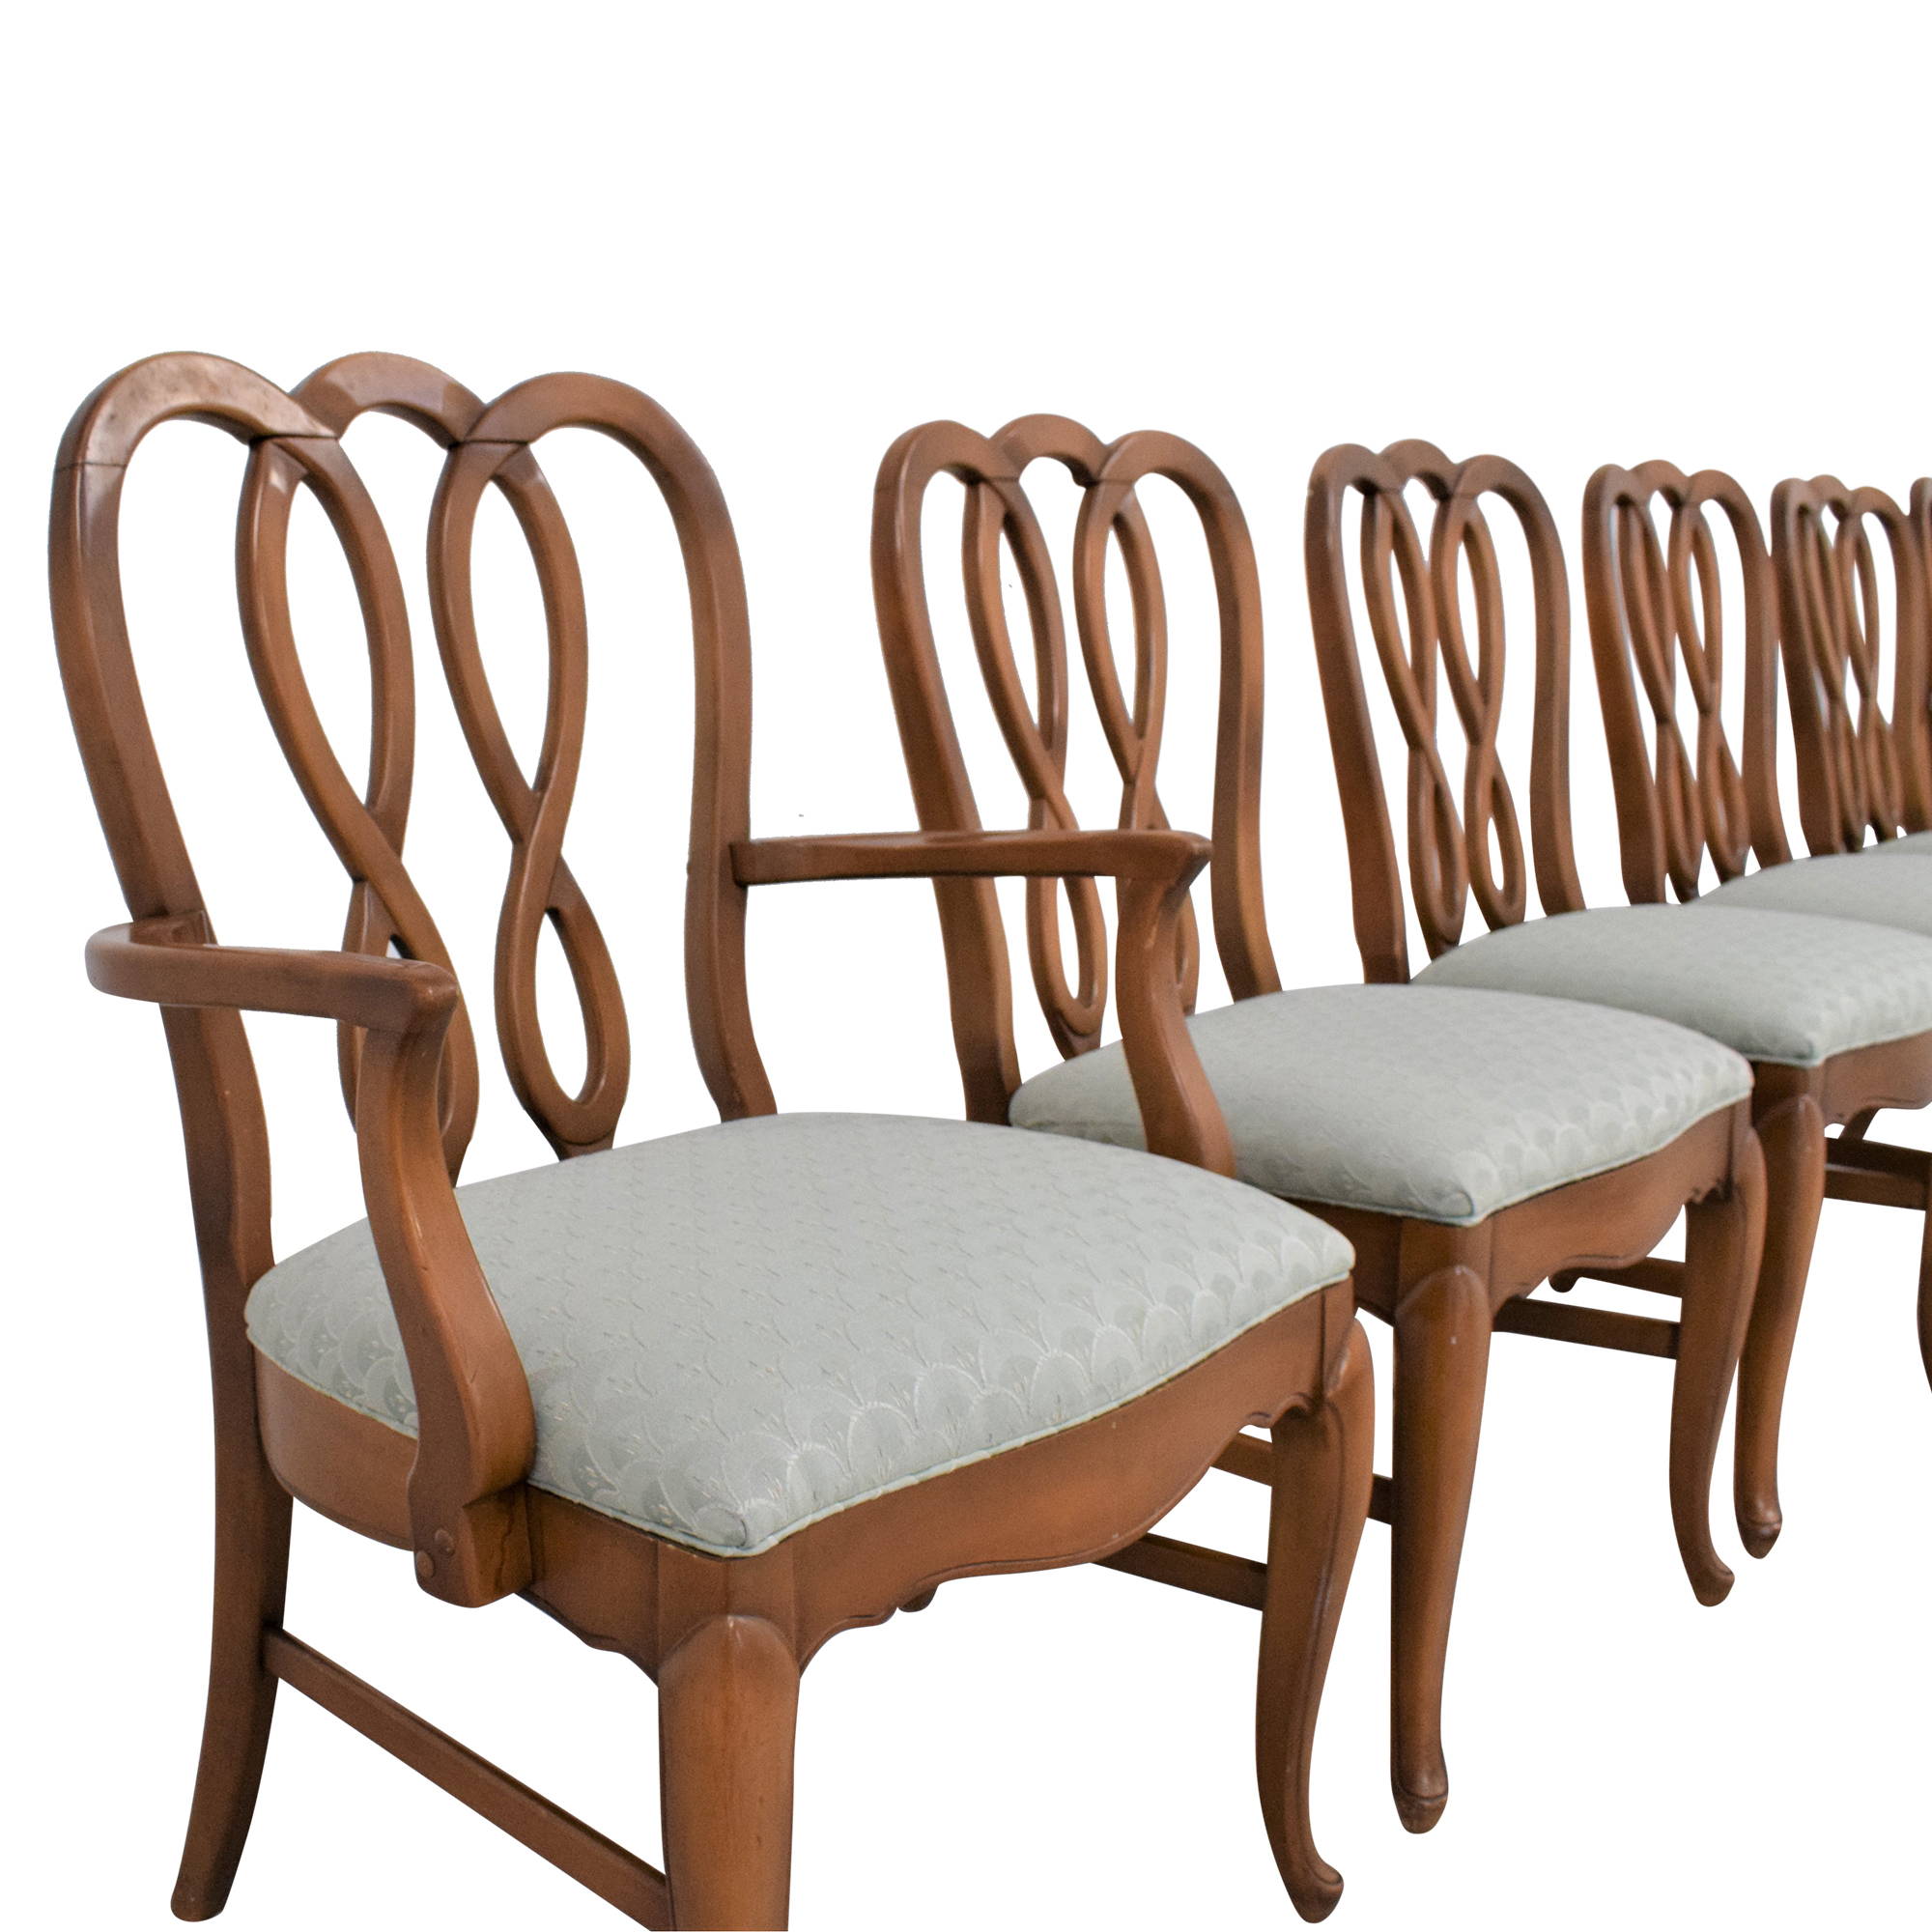 Williams Furniture Williams Furniture Bentwood Style Dining Chairs used